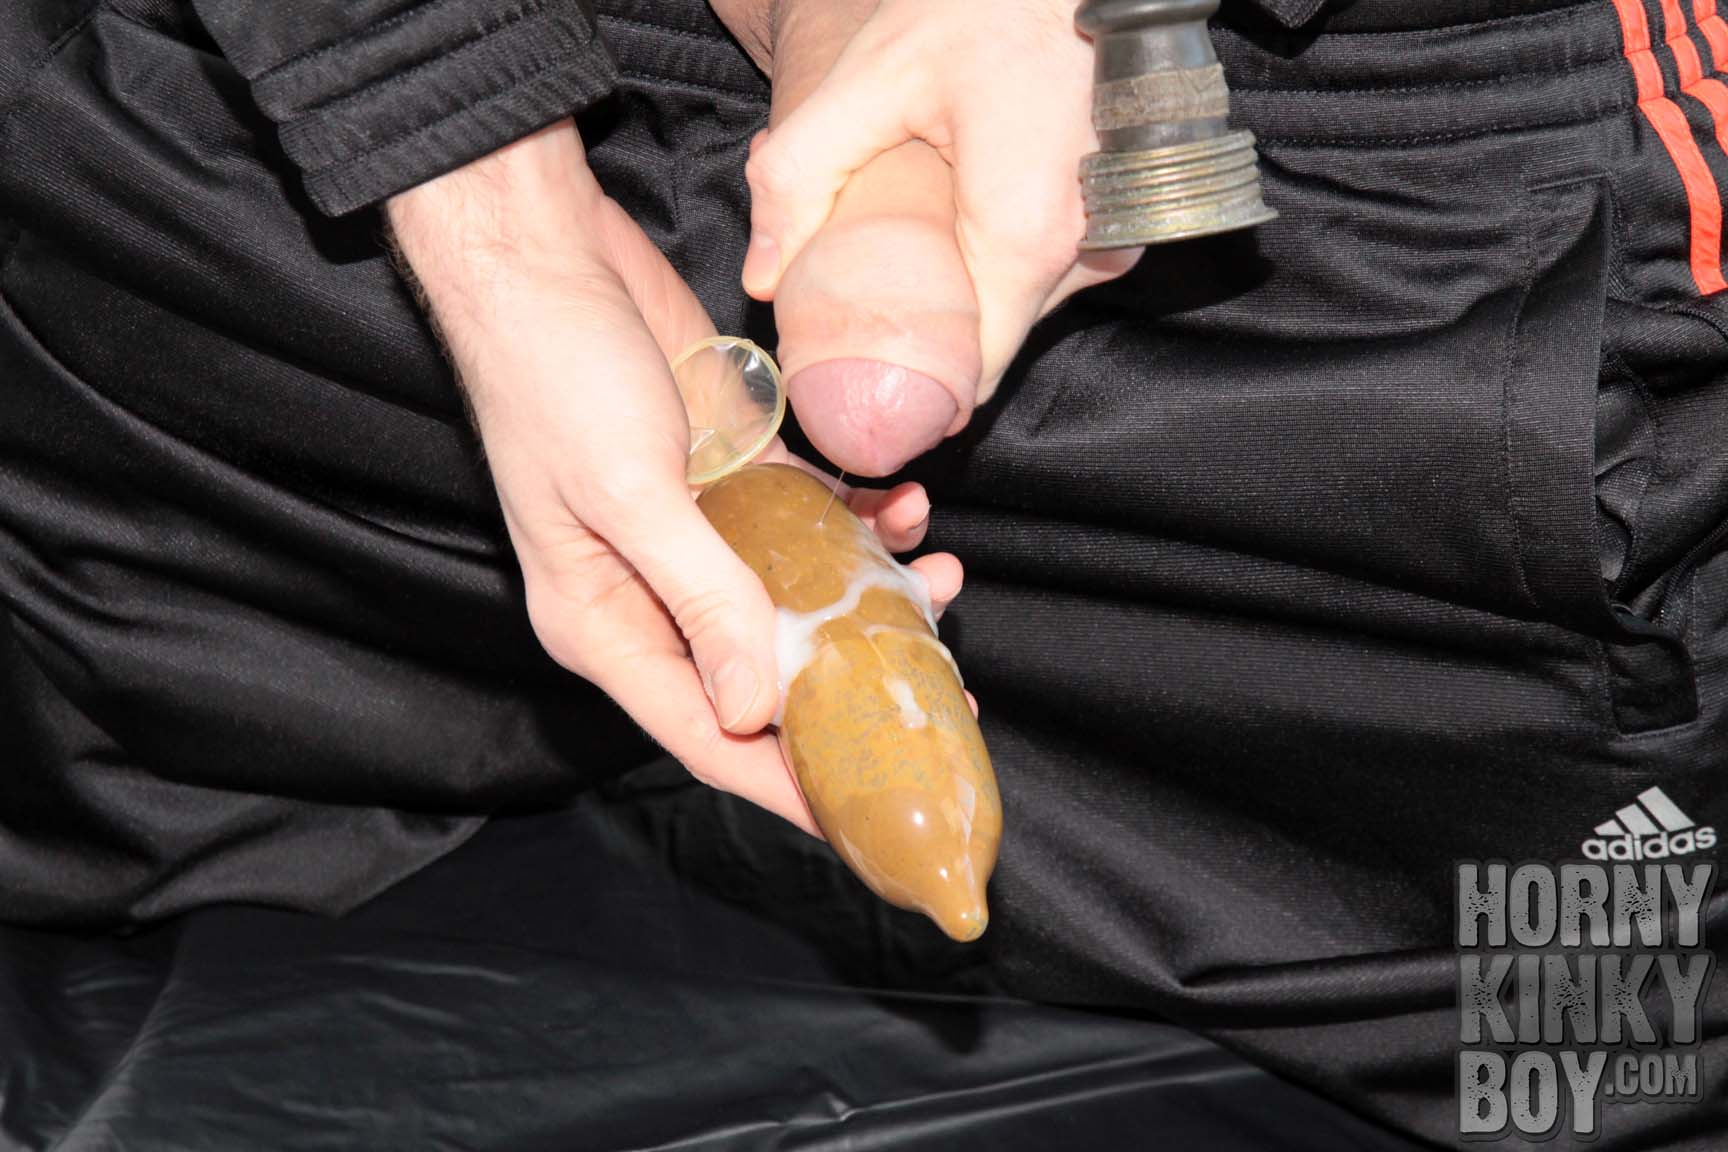 Gear Fetish Boy Loving His Condoms Full Of Crap